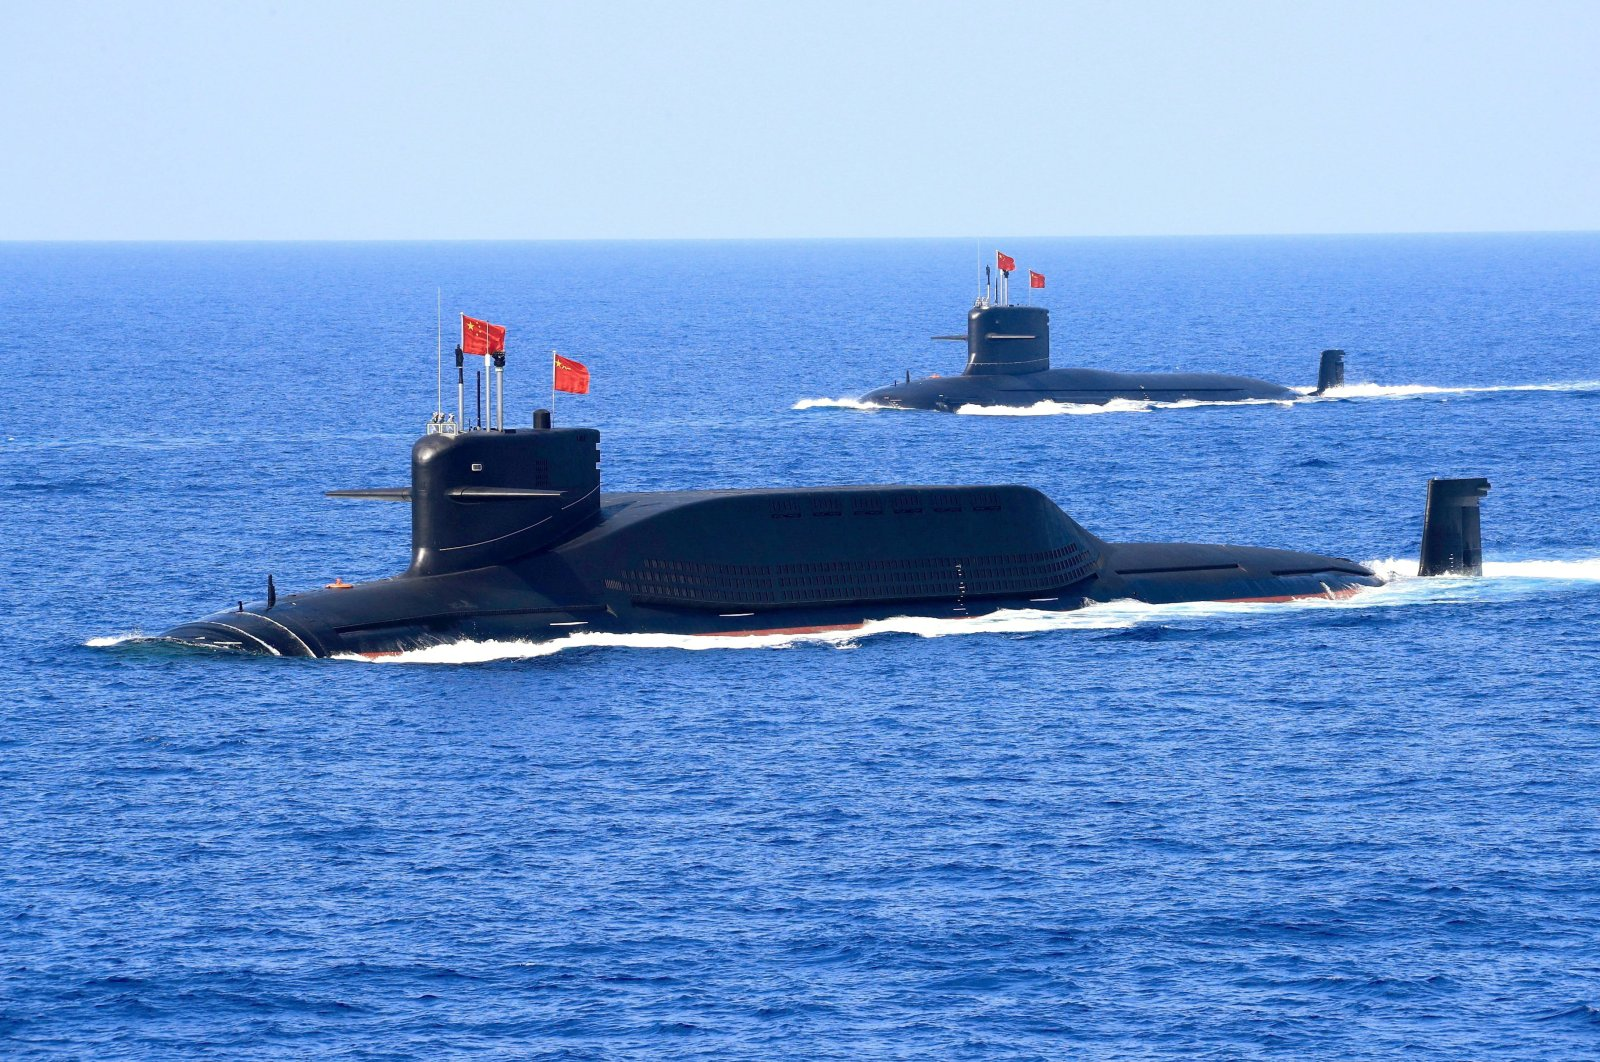 A nuclear-powered Jin-class ballistic missile submarine of the Chinese People's Liberation Army (PLA) Navy is seen during a military display in the South China Sea, April 12, 2018. (Reuters Photo)